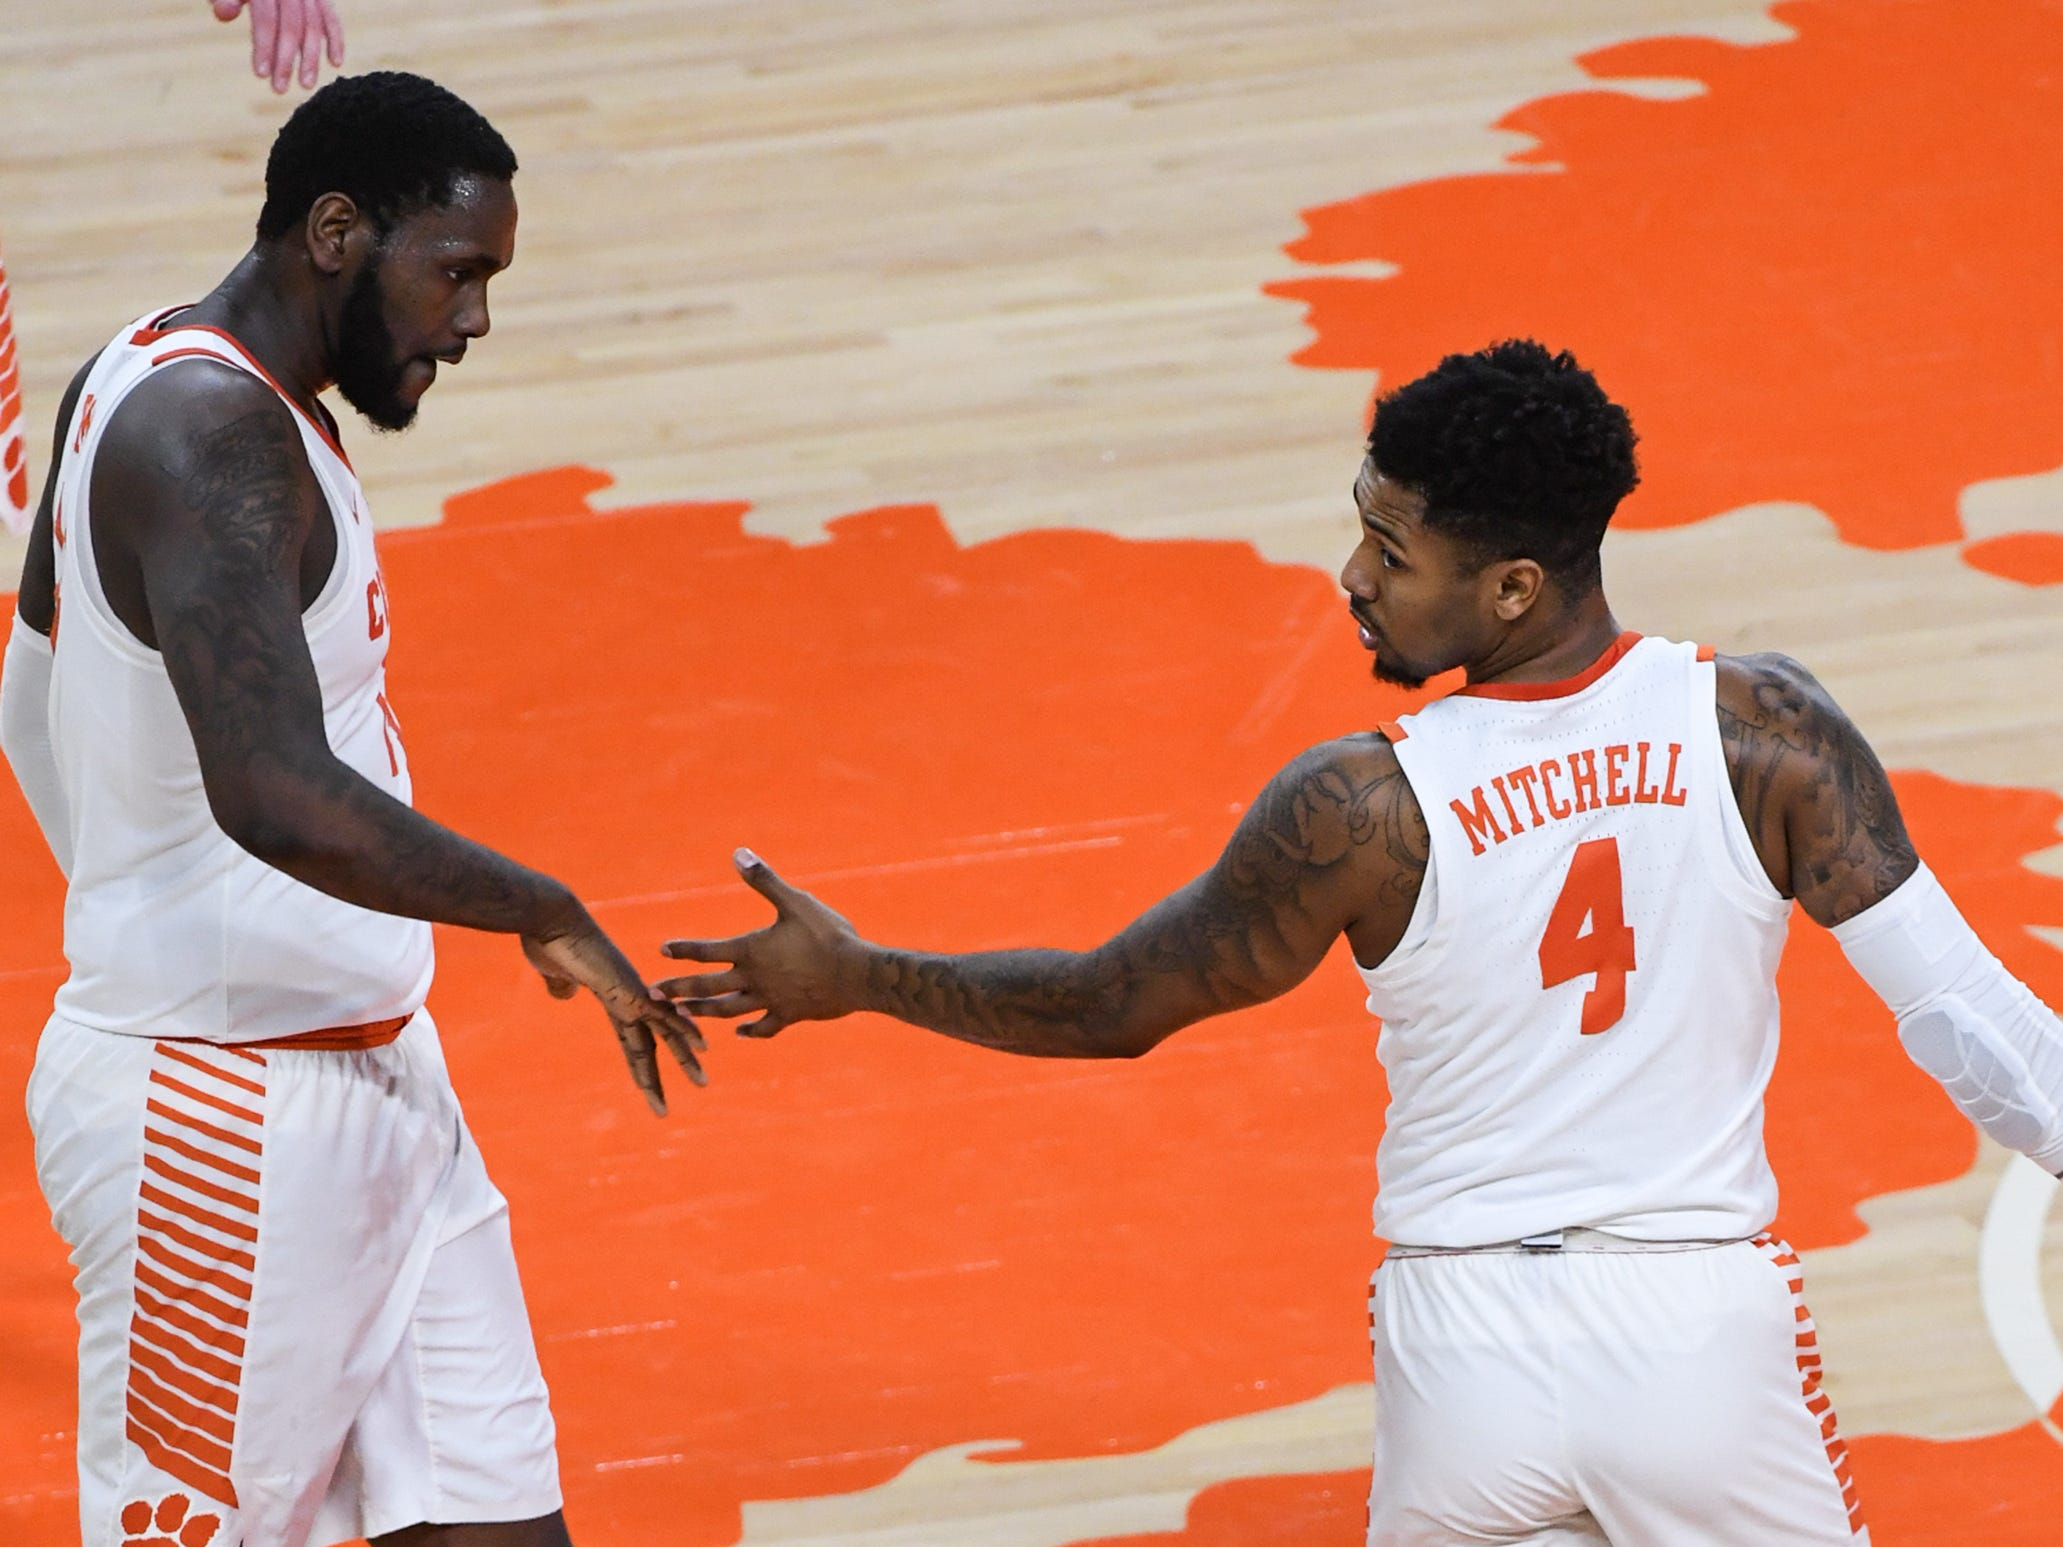 Clemson forward Elijah Thomas (14) congratulates Clemson guard Shelton Mitchell (4) after he made a thre-pointer against Florida State during the first half at Littlejohn Coliseum in Clemson Tuesday, February 19, 2019.